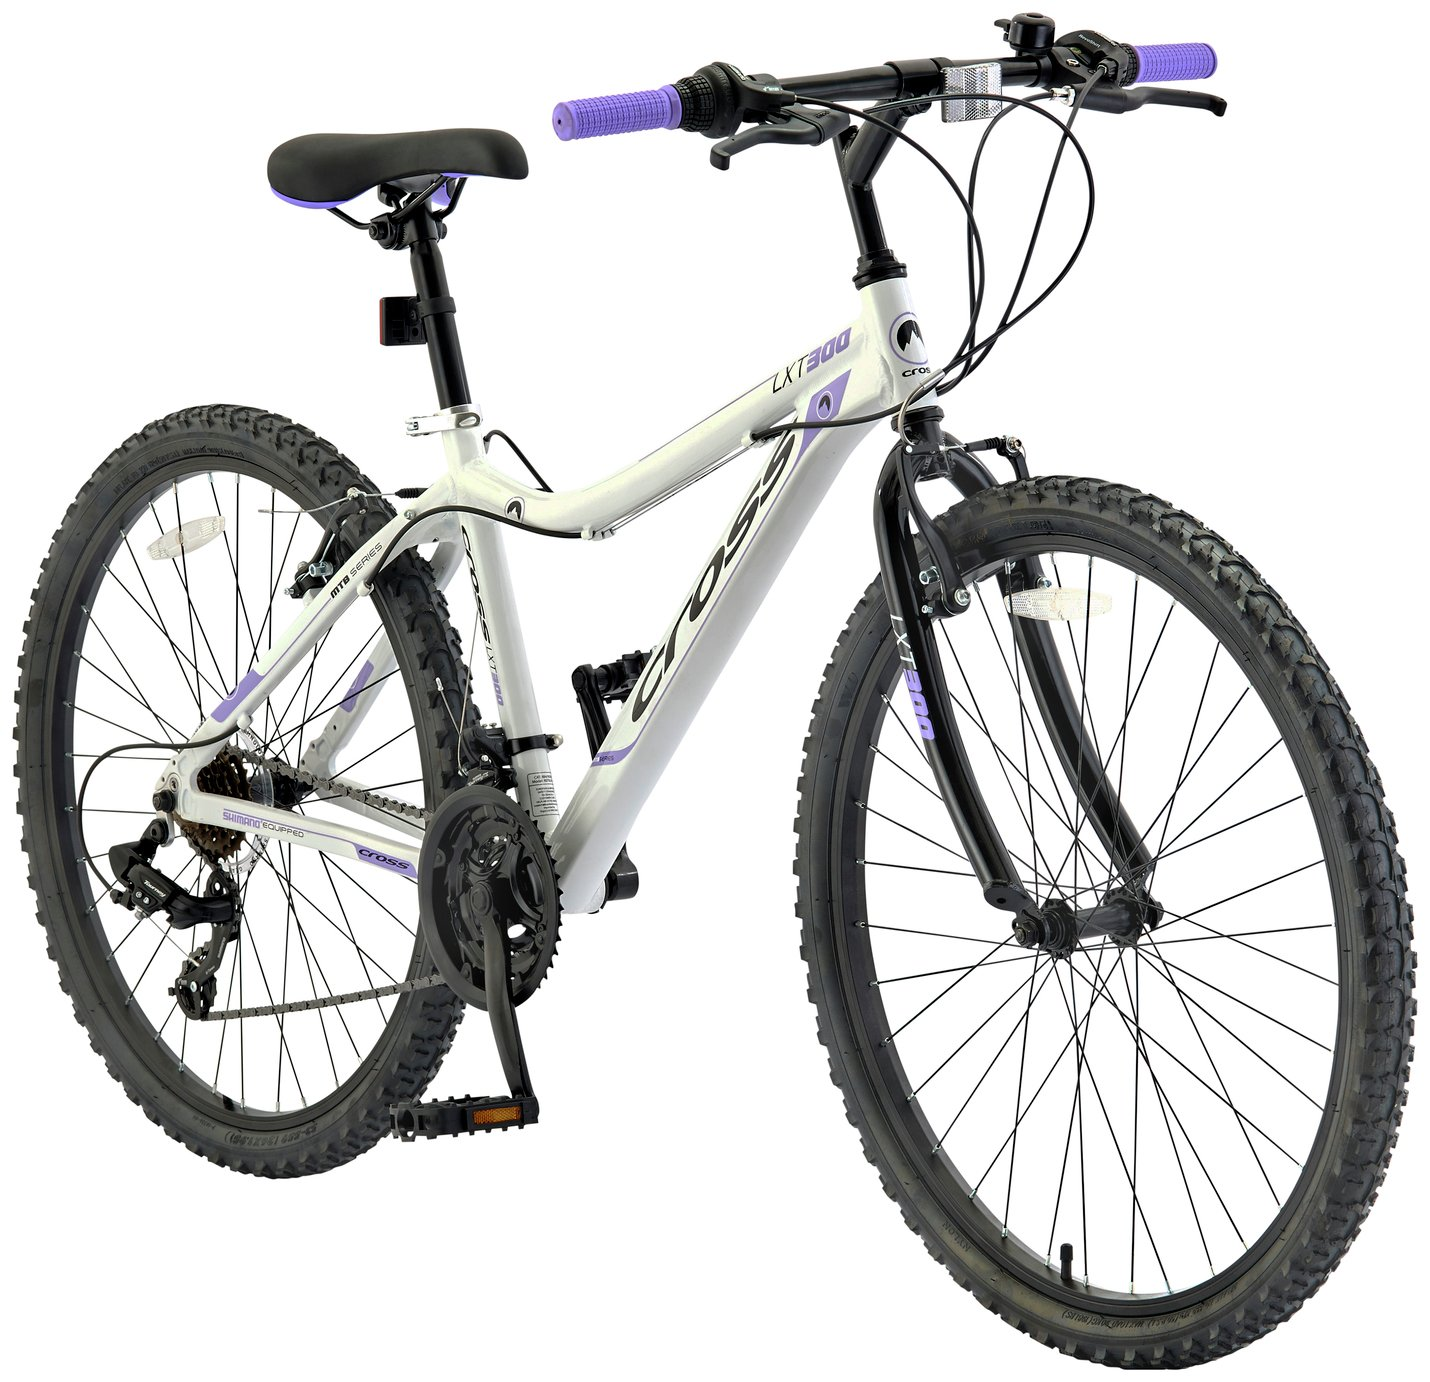 Cross Alloy LXT300 26 Inch Rigid Female Mountain Bike